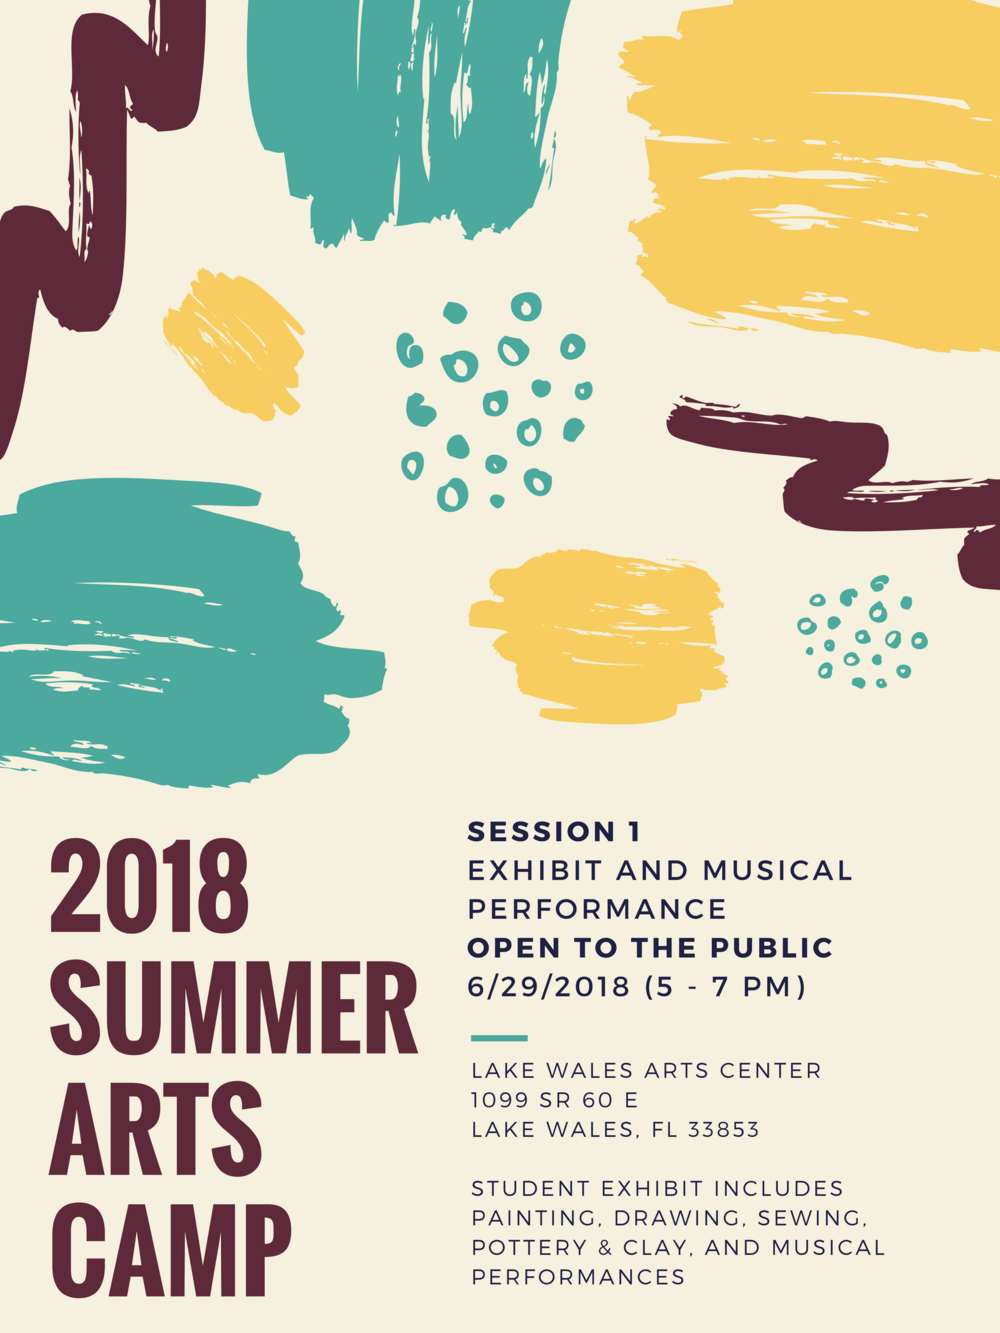 2018_ArtsCamp_Session1_ExhibitFlyer.png